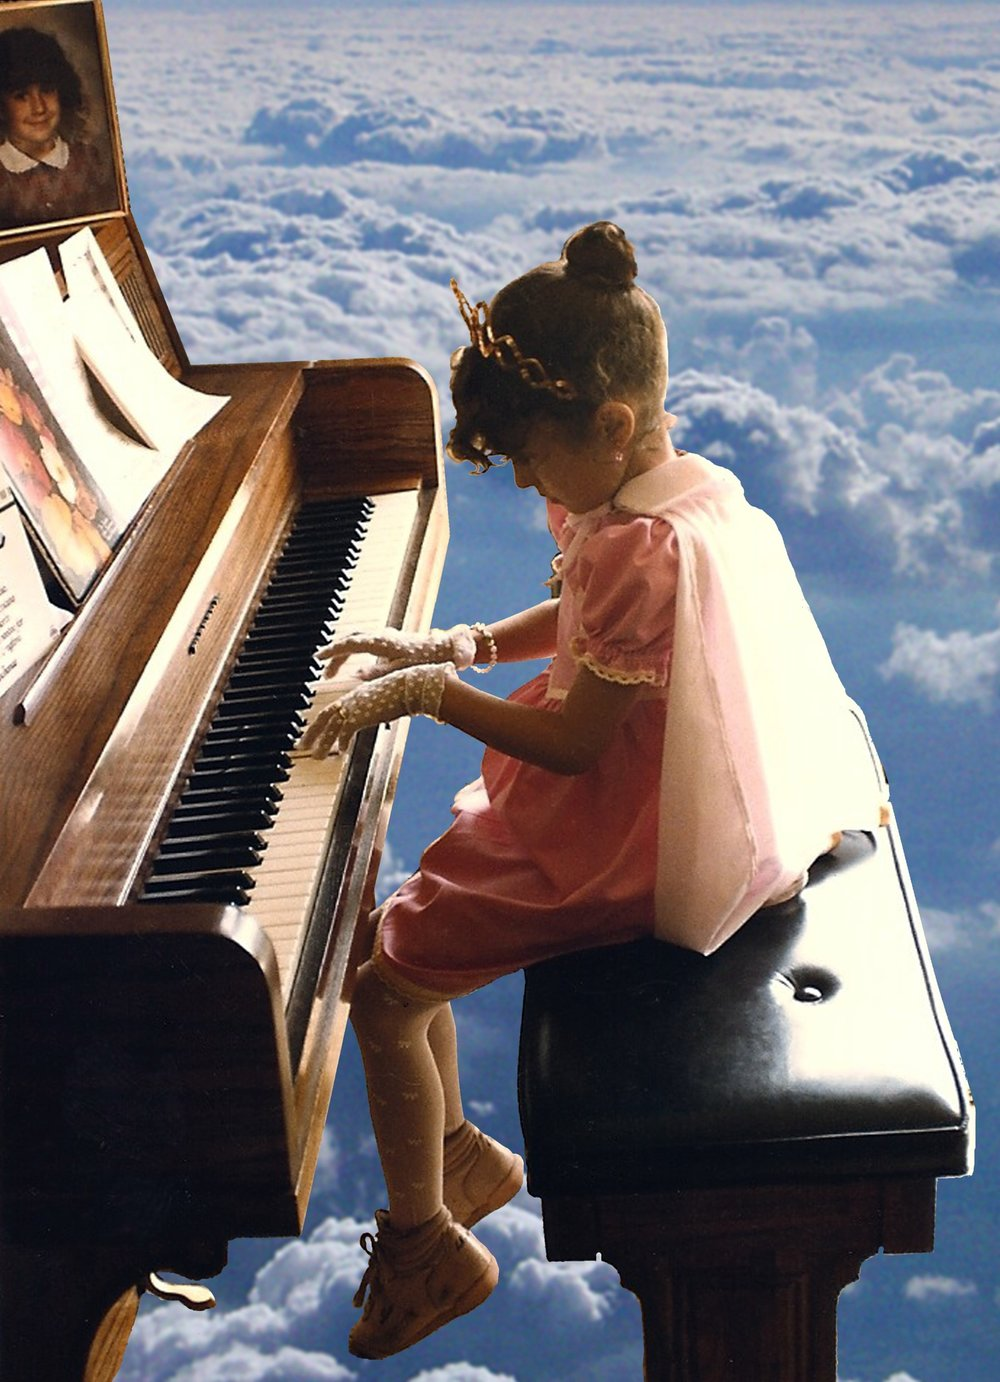 020 kid alu piano 300dpi 1600.jpg